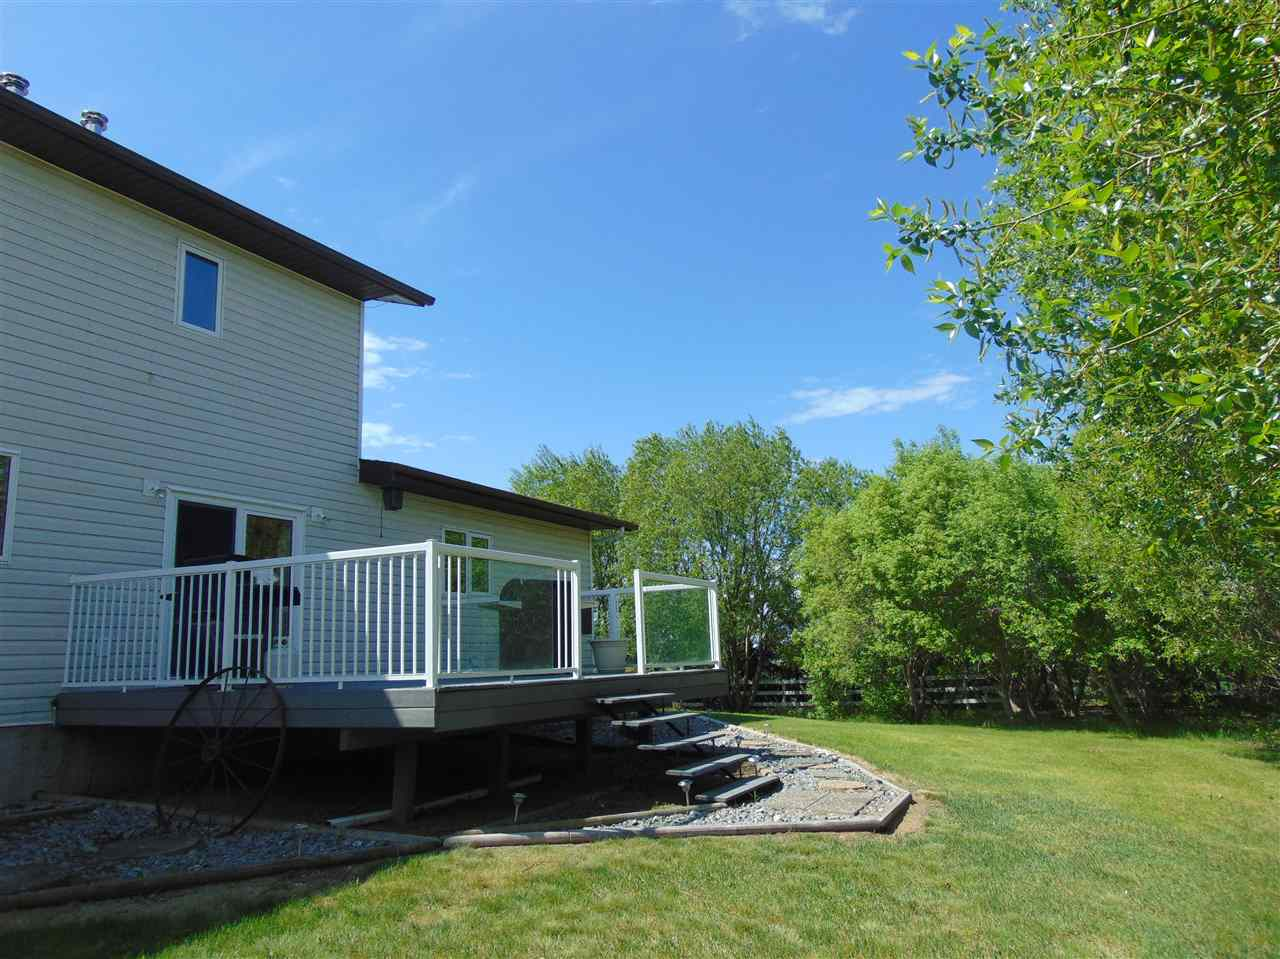 Photo 4: 61124 Rg Rd 253: Rural Westlock County House for sale : MLS(r) # E4065150